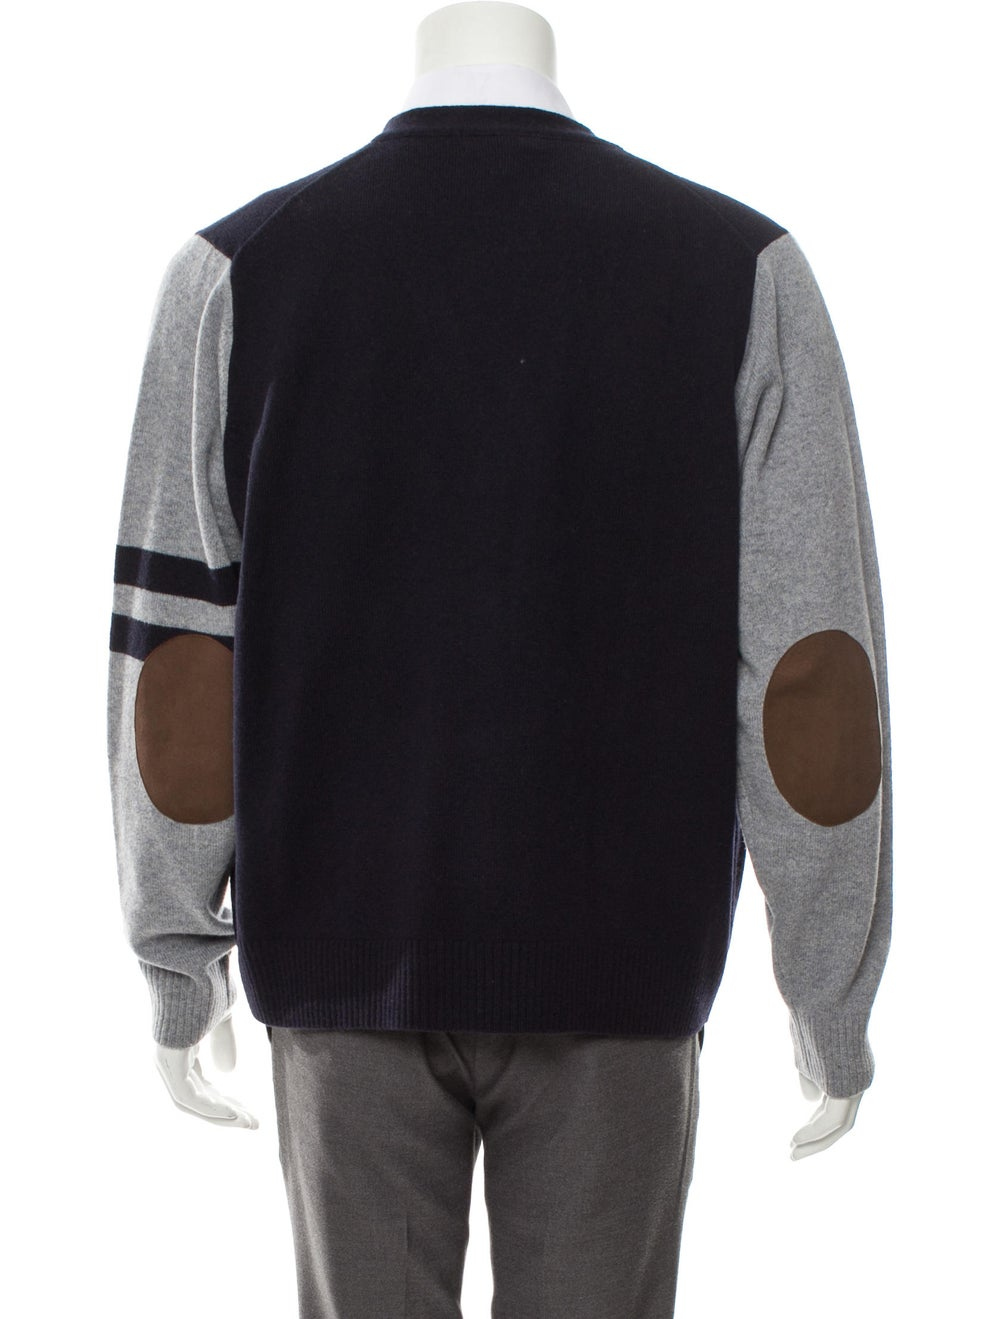 Cremieux Wool Suede-Trimmed Cardigan navy - image 3